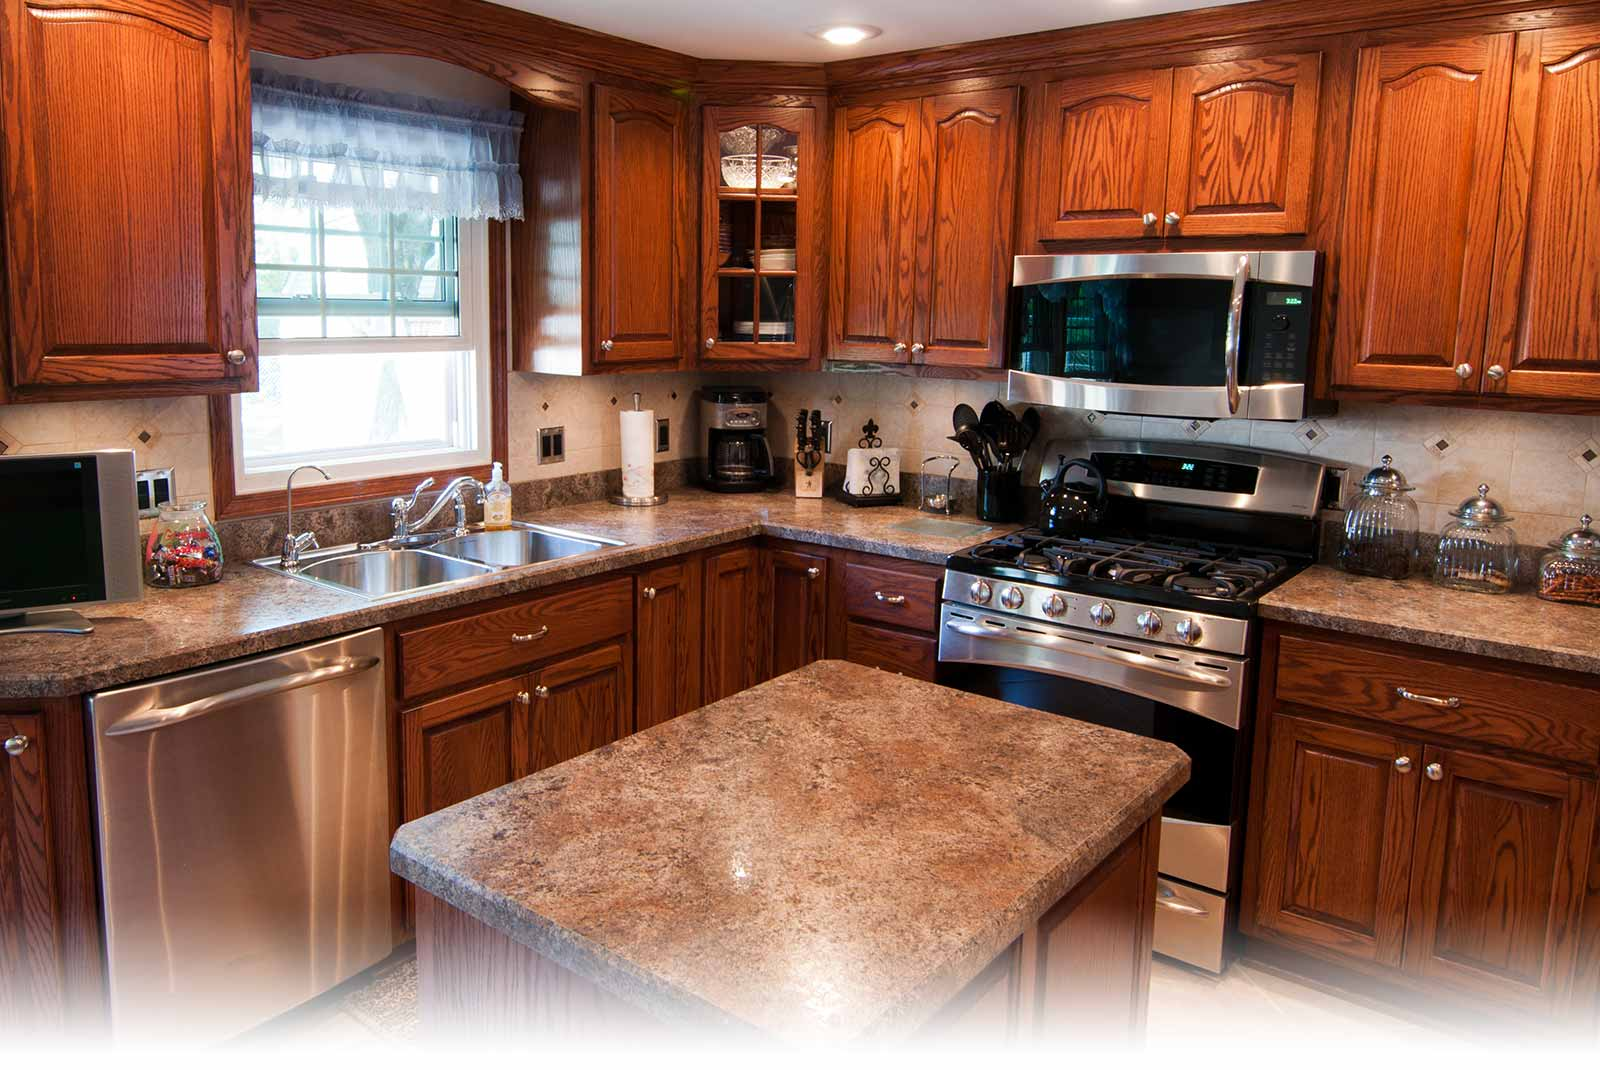 Custom Kitchens Built In Cabinets And Countertops Near Schaumburg Il Cities Designs Custom Kitchens Built In Cabinets For Homes And Offices Countertops Bathroom Remodels And Tile For Bathrooms And Fireplaces